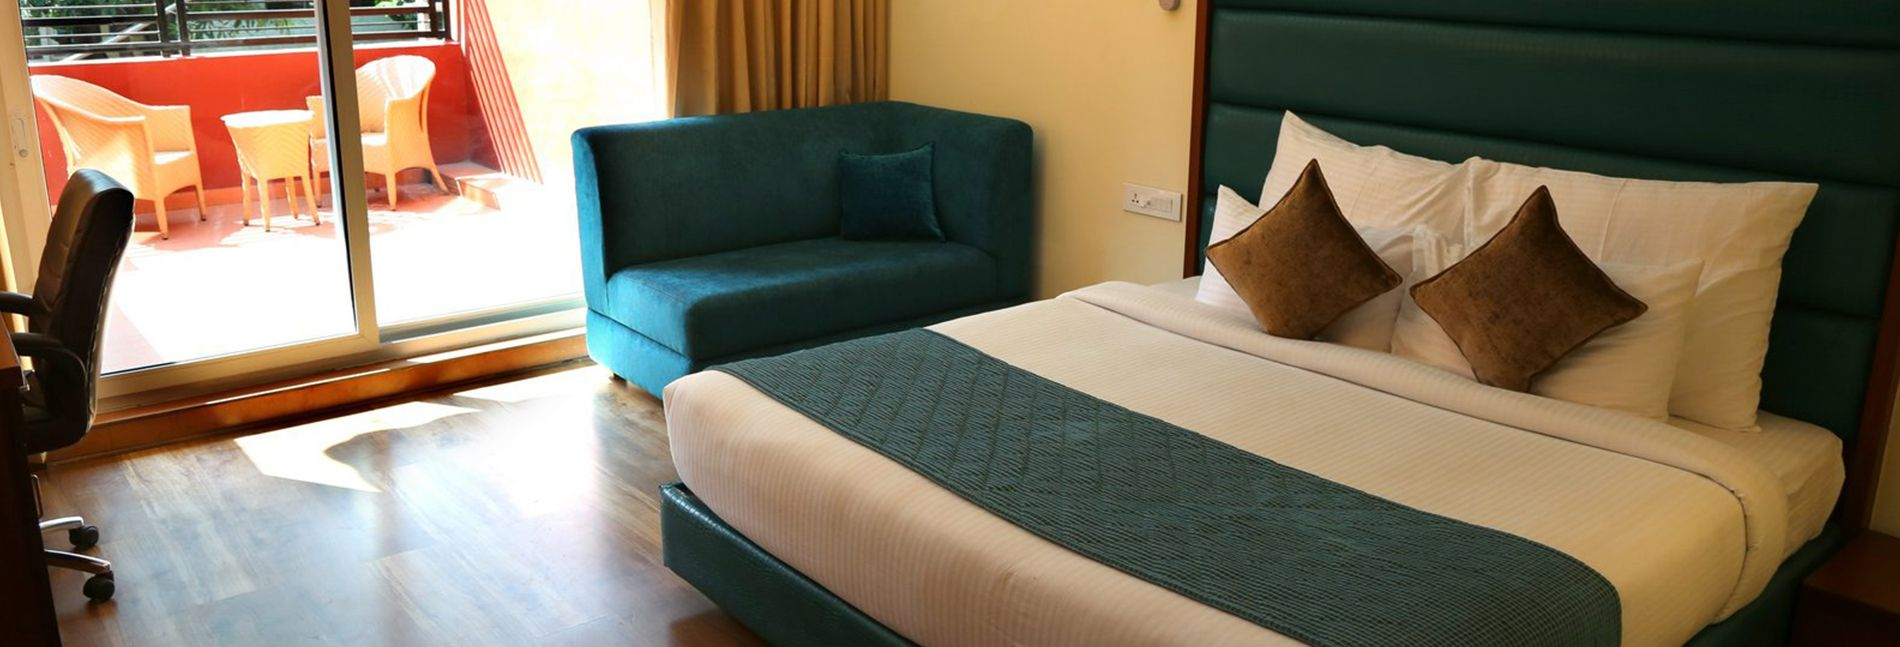 Three Star Hotel for Comfortable Stay, Cheaper Prices in Luxurious Rooms in Mohali near Chandigarh, Hotel Near to Mohali Industrial Area and Mohali PCA Stadium.